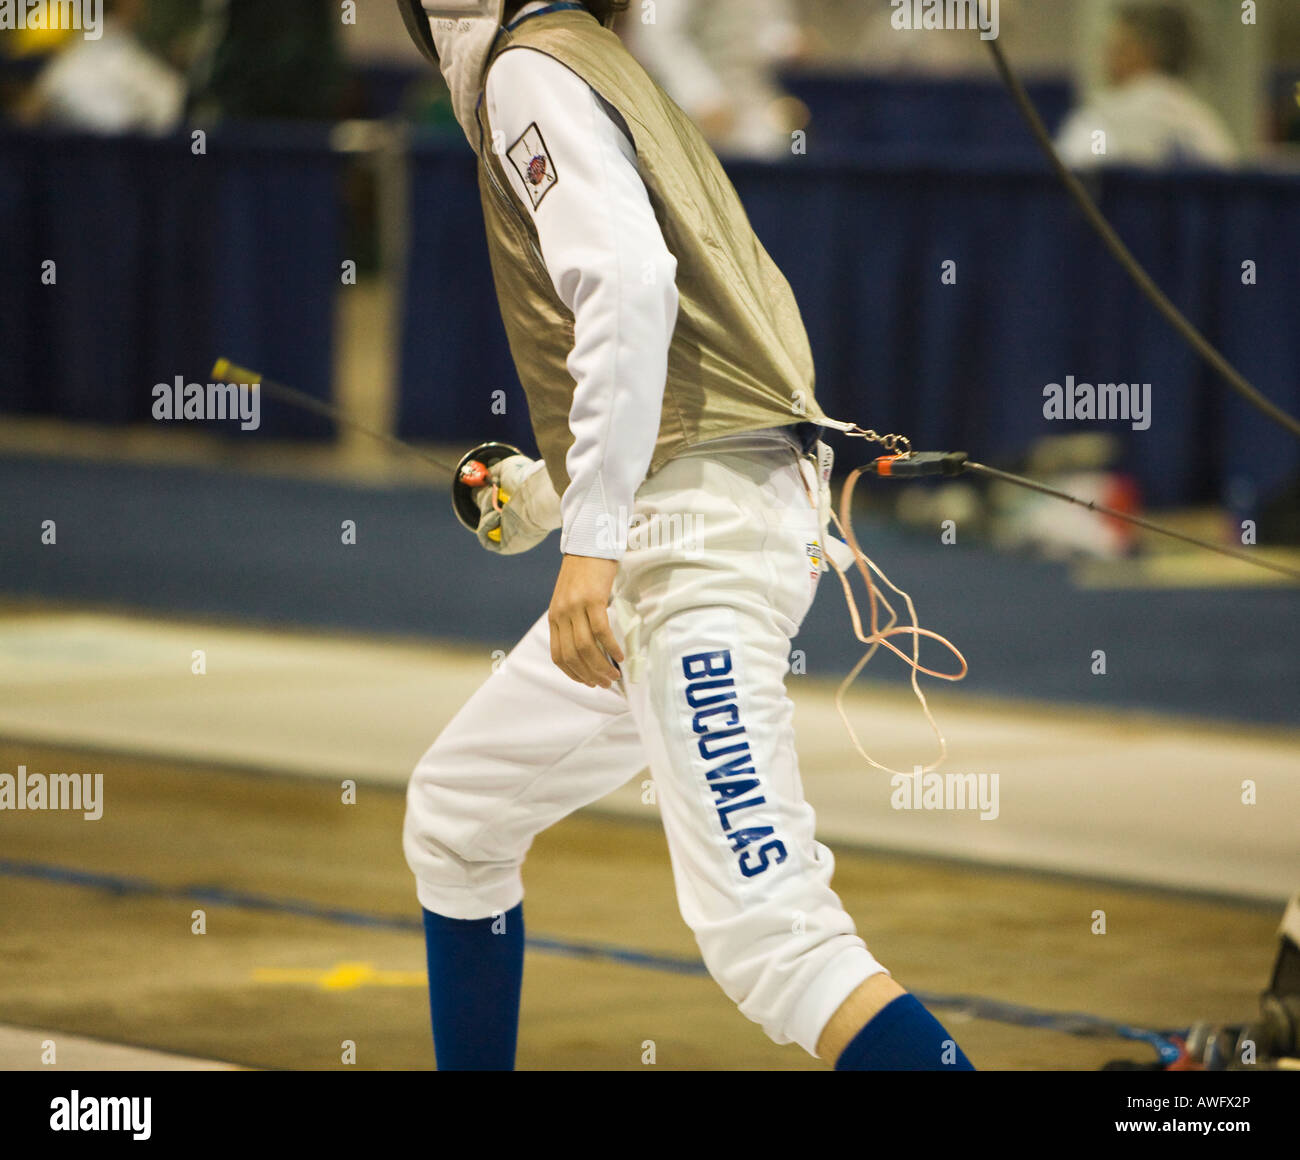 SPORTS Fencing competition bout male foil competitor on strip during match electronic connector to lame name stencil - Stock Image